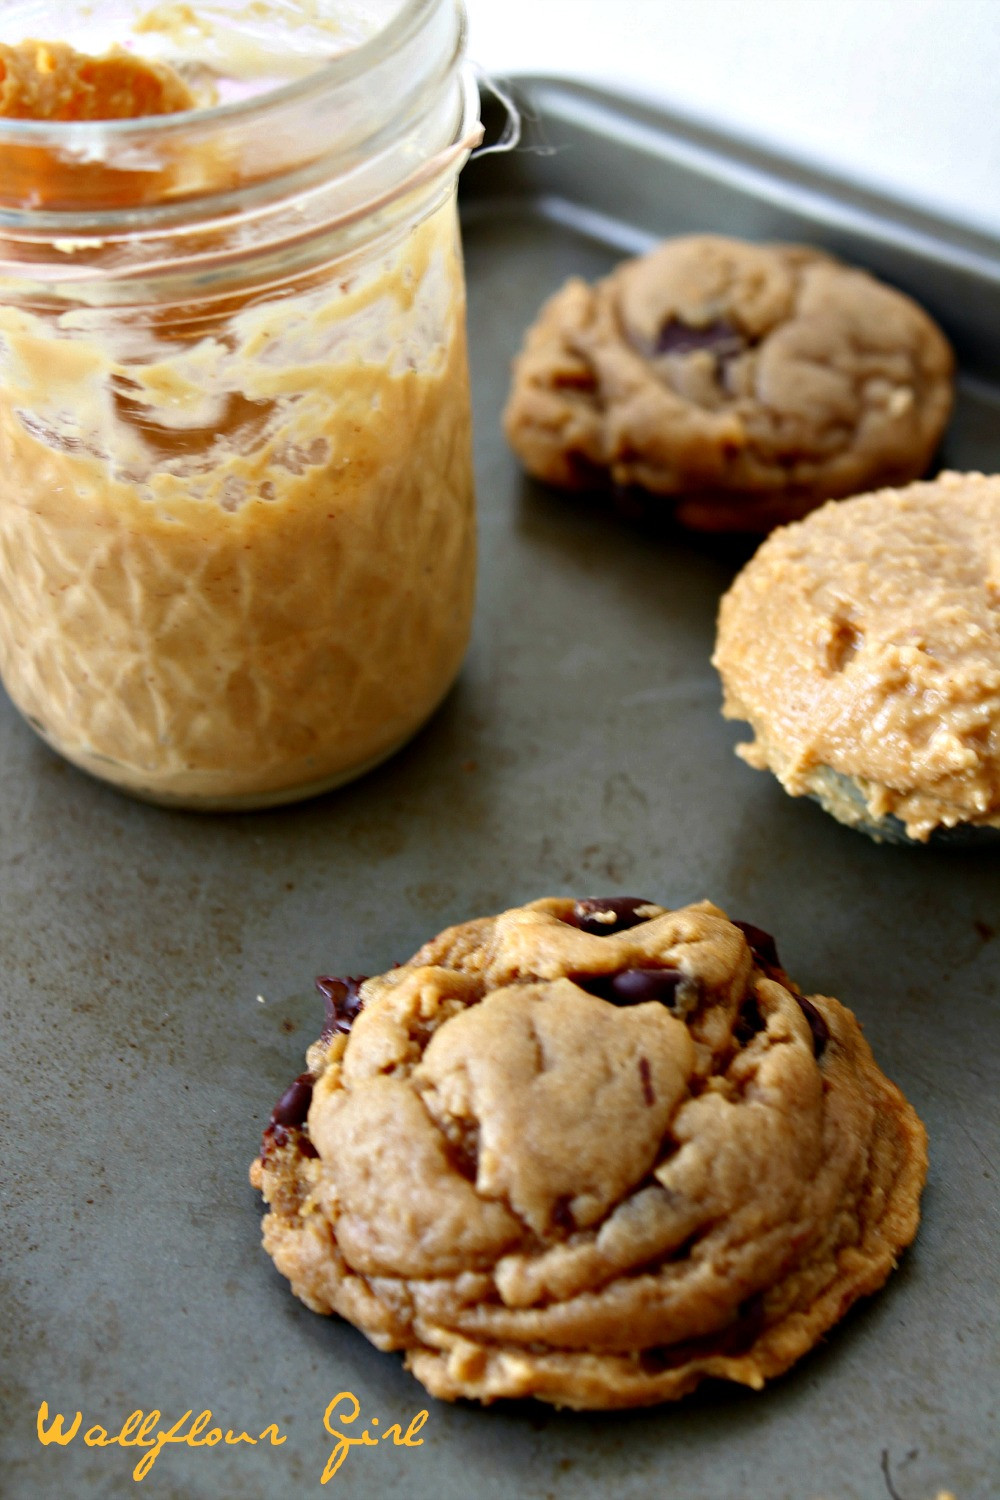 Chocolate Chip Peanut Butter Cookies  My Favorite Puffy Chewy Peanut Butter Chocolate Chip